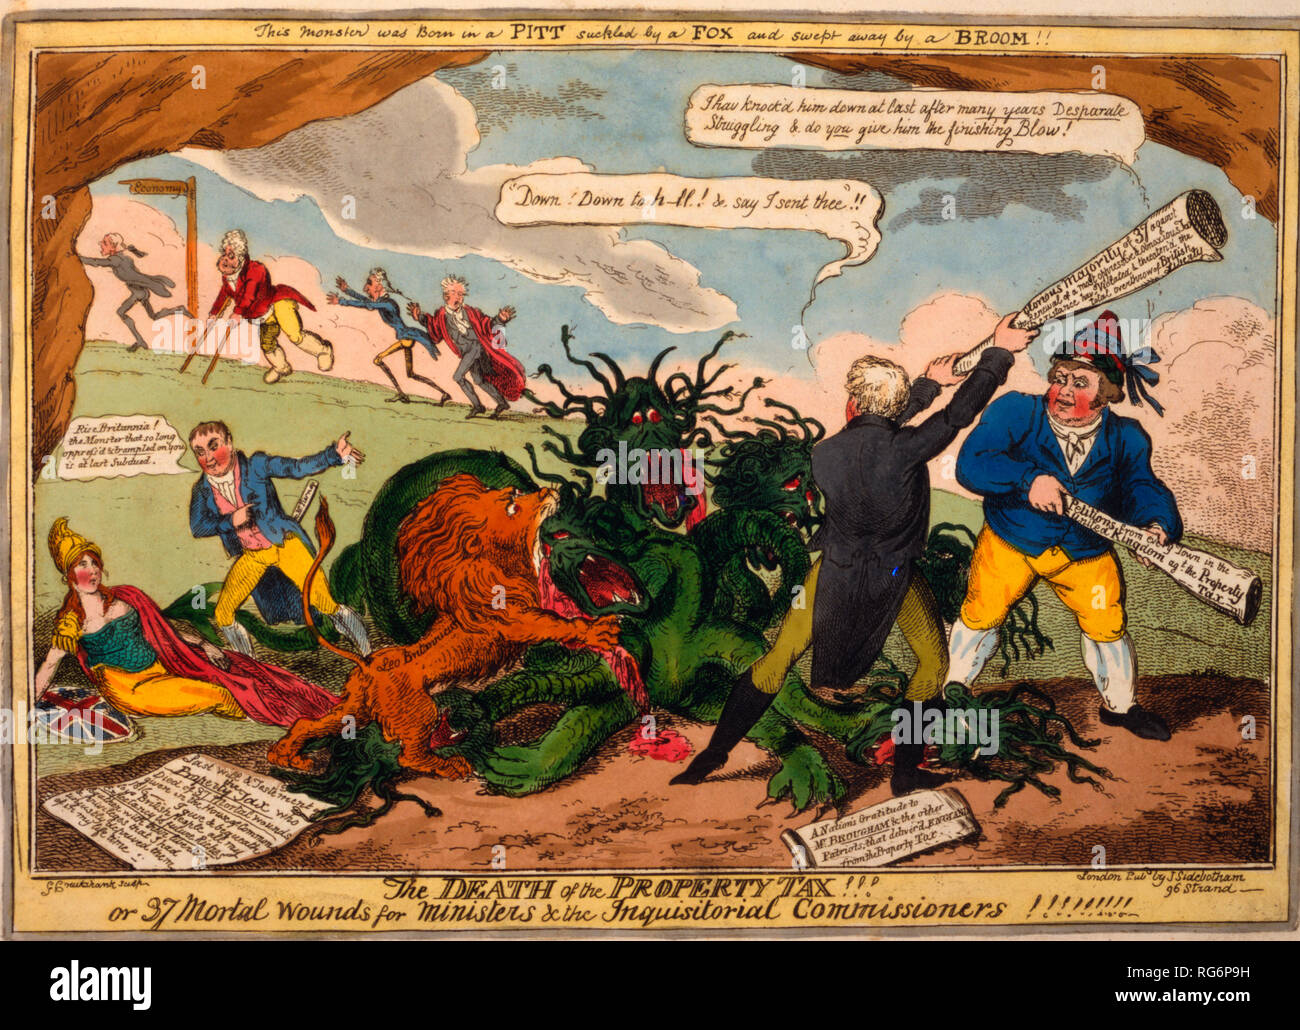 The death of the property tax! Or 37 mortal wounds for ministers & the inquisitoral commissioners! - Henry Brougham, John Bull, and the British lion (Leo Britannicus) attacking a hydra representing the property tax. At tail of the monster Mr. Tierney tells Britannia to rise. In the background, Liverpool, the Regent, Castlereagh, and Vansittart hasten up a slope with a sign-post pointing to 'Economy.' - Stock Image